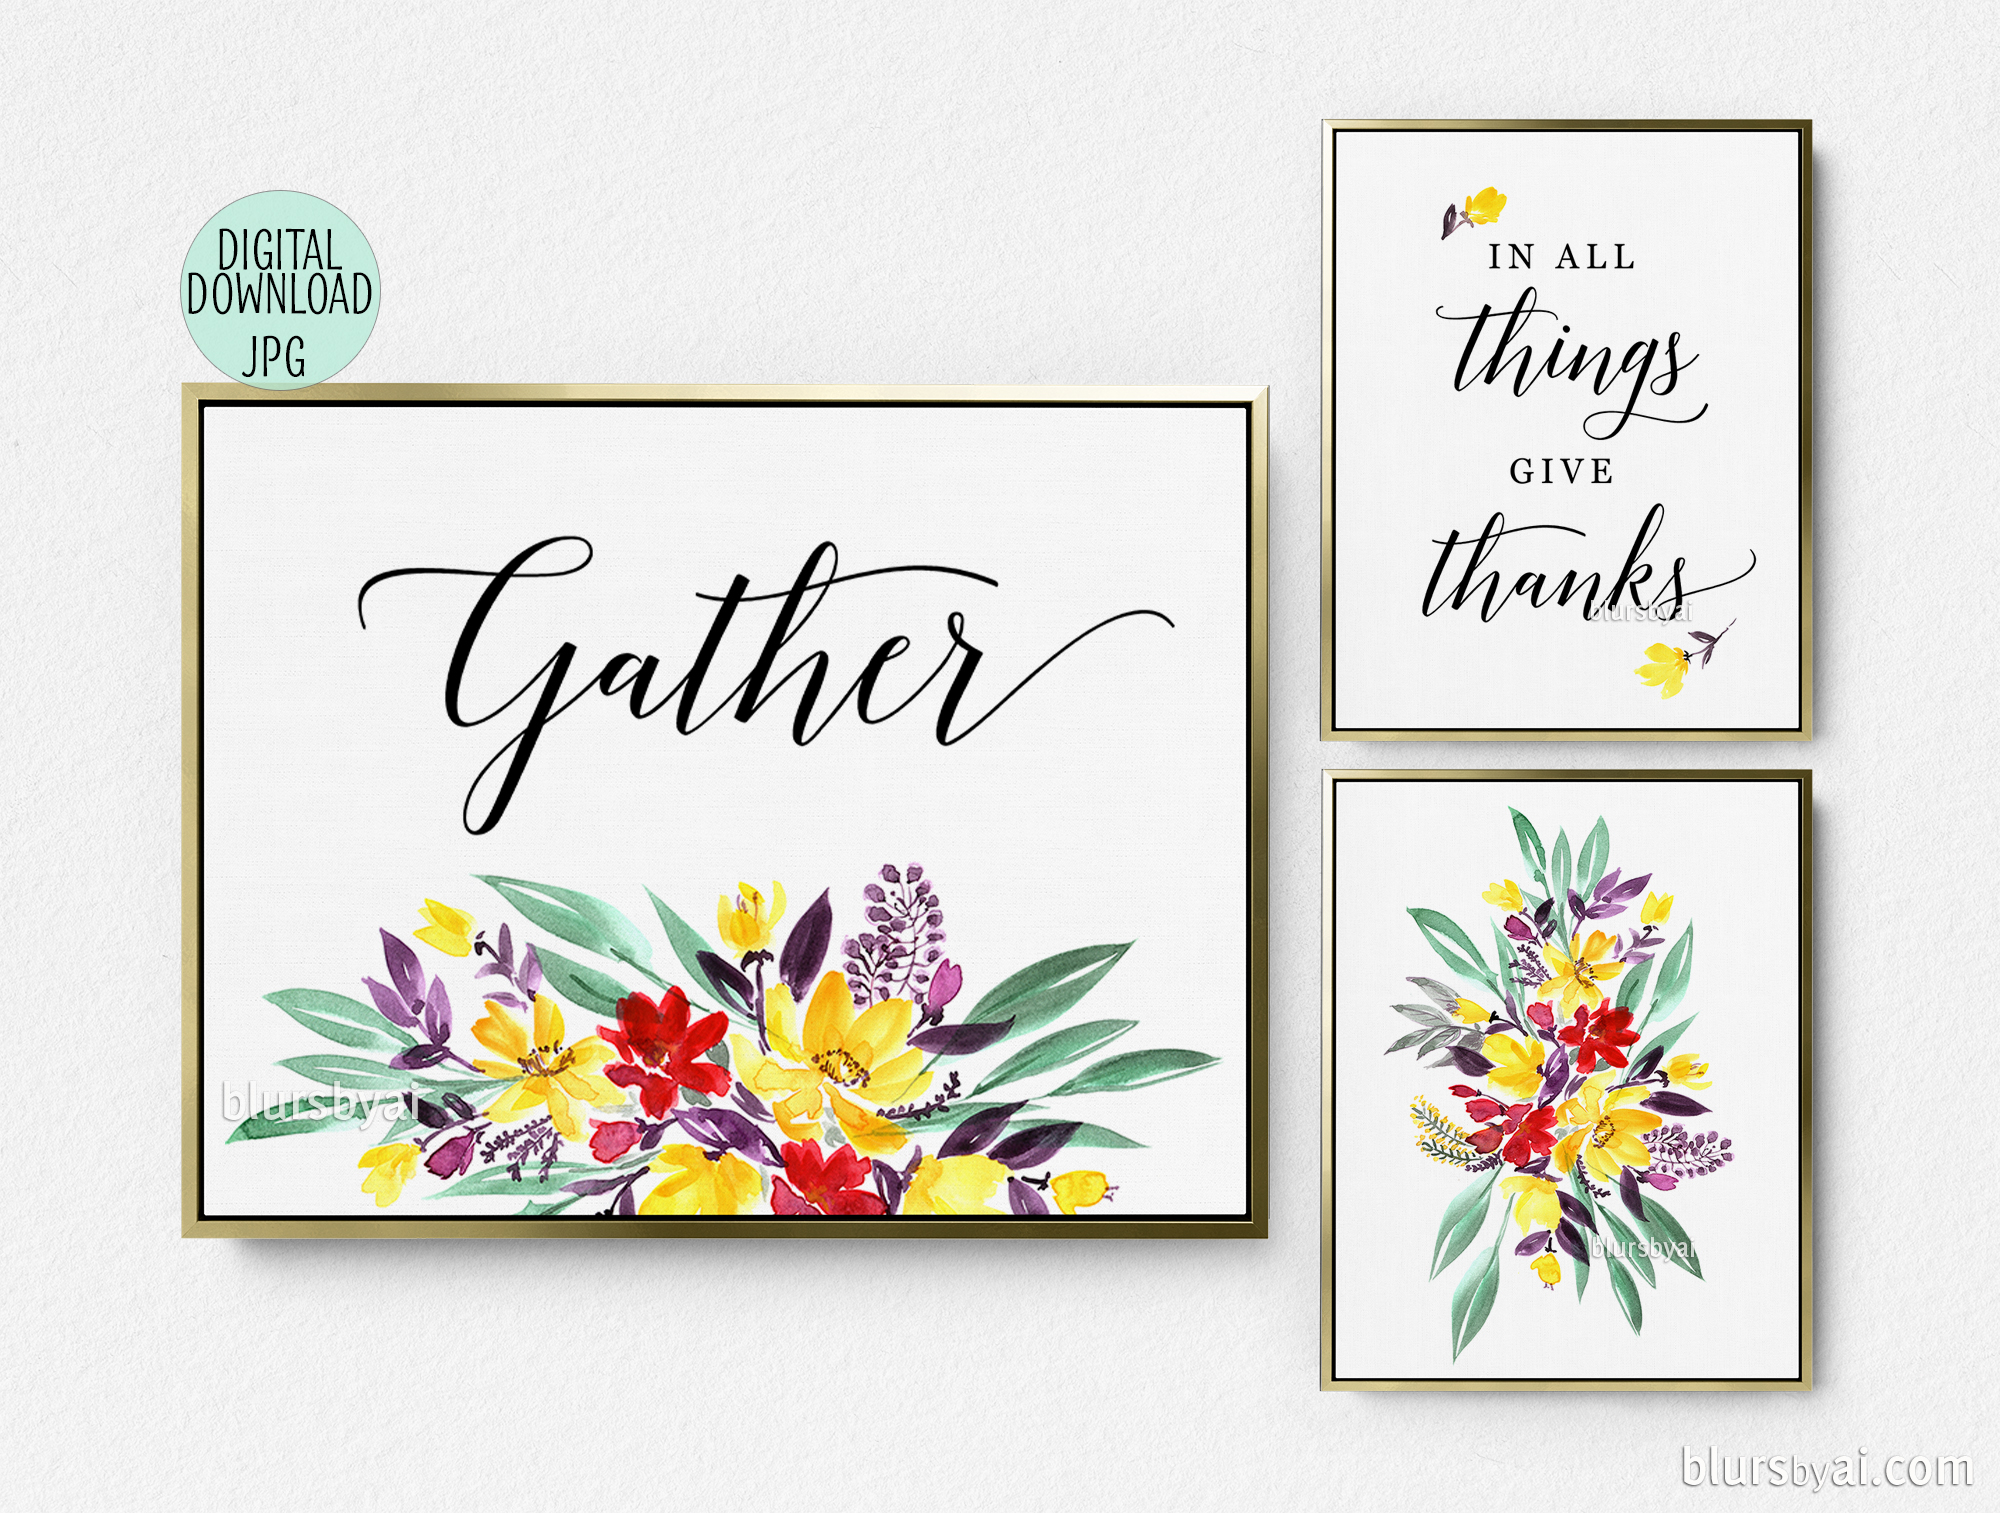 photo about Gather Printable titled Assemble indicators printable (3 for the price tag of 1)